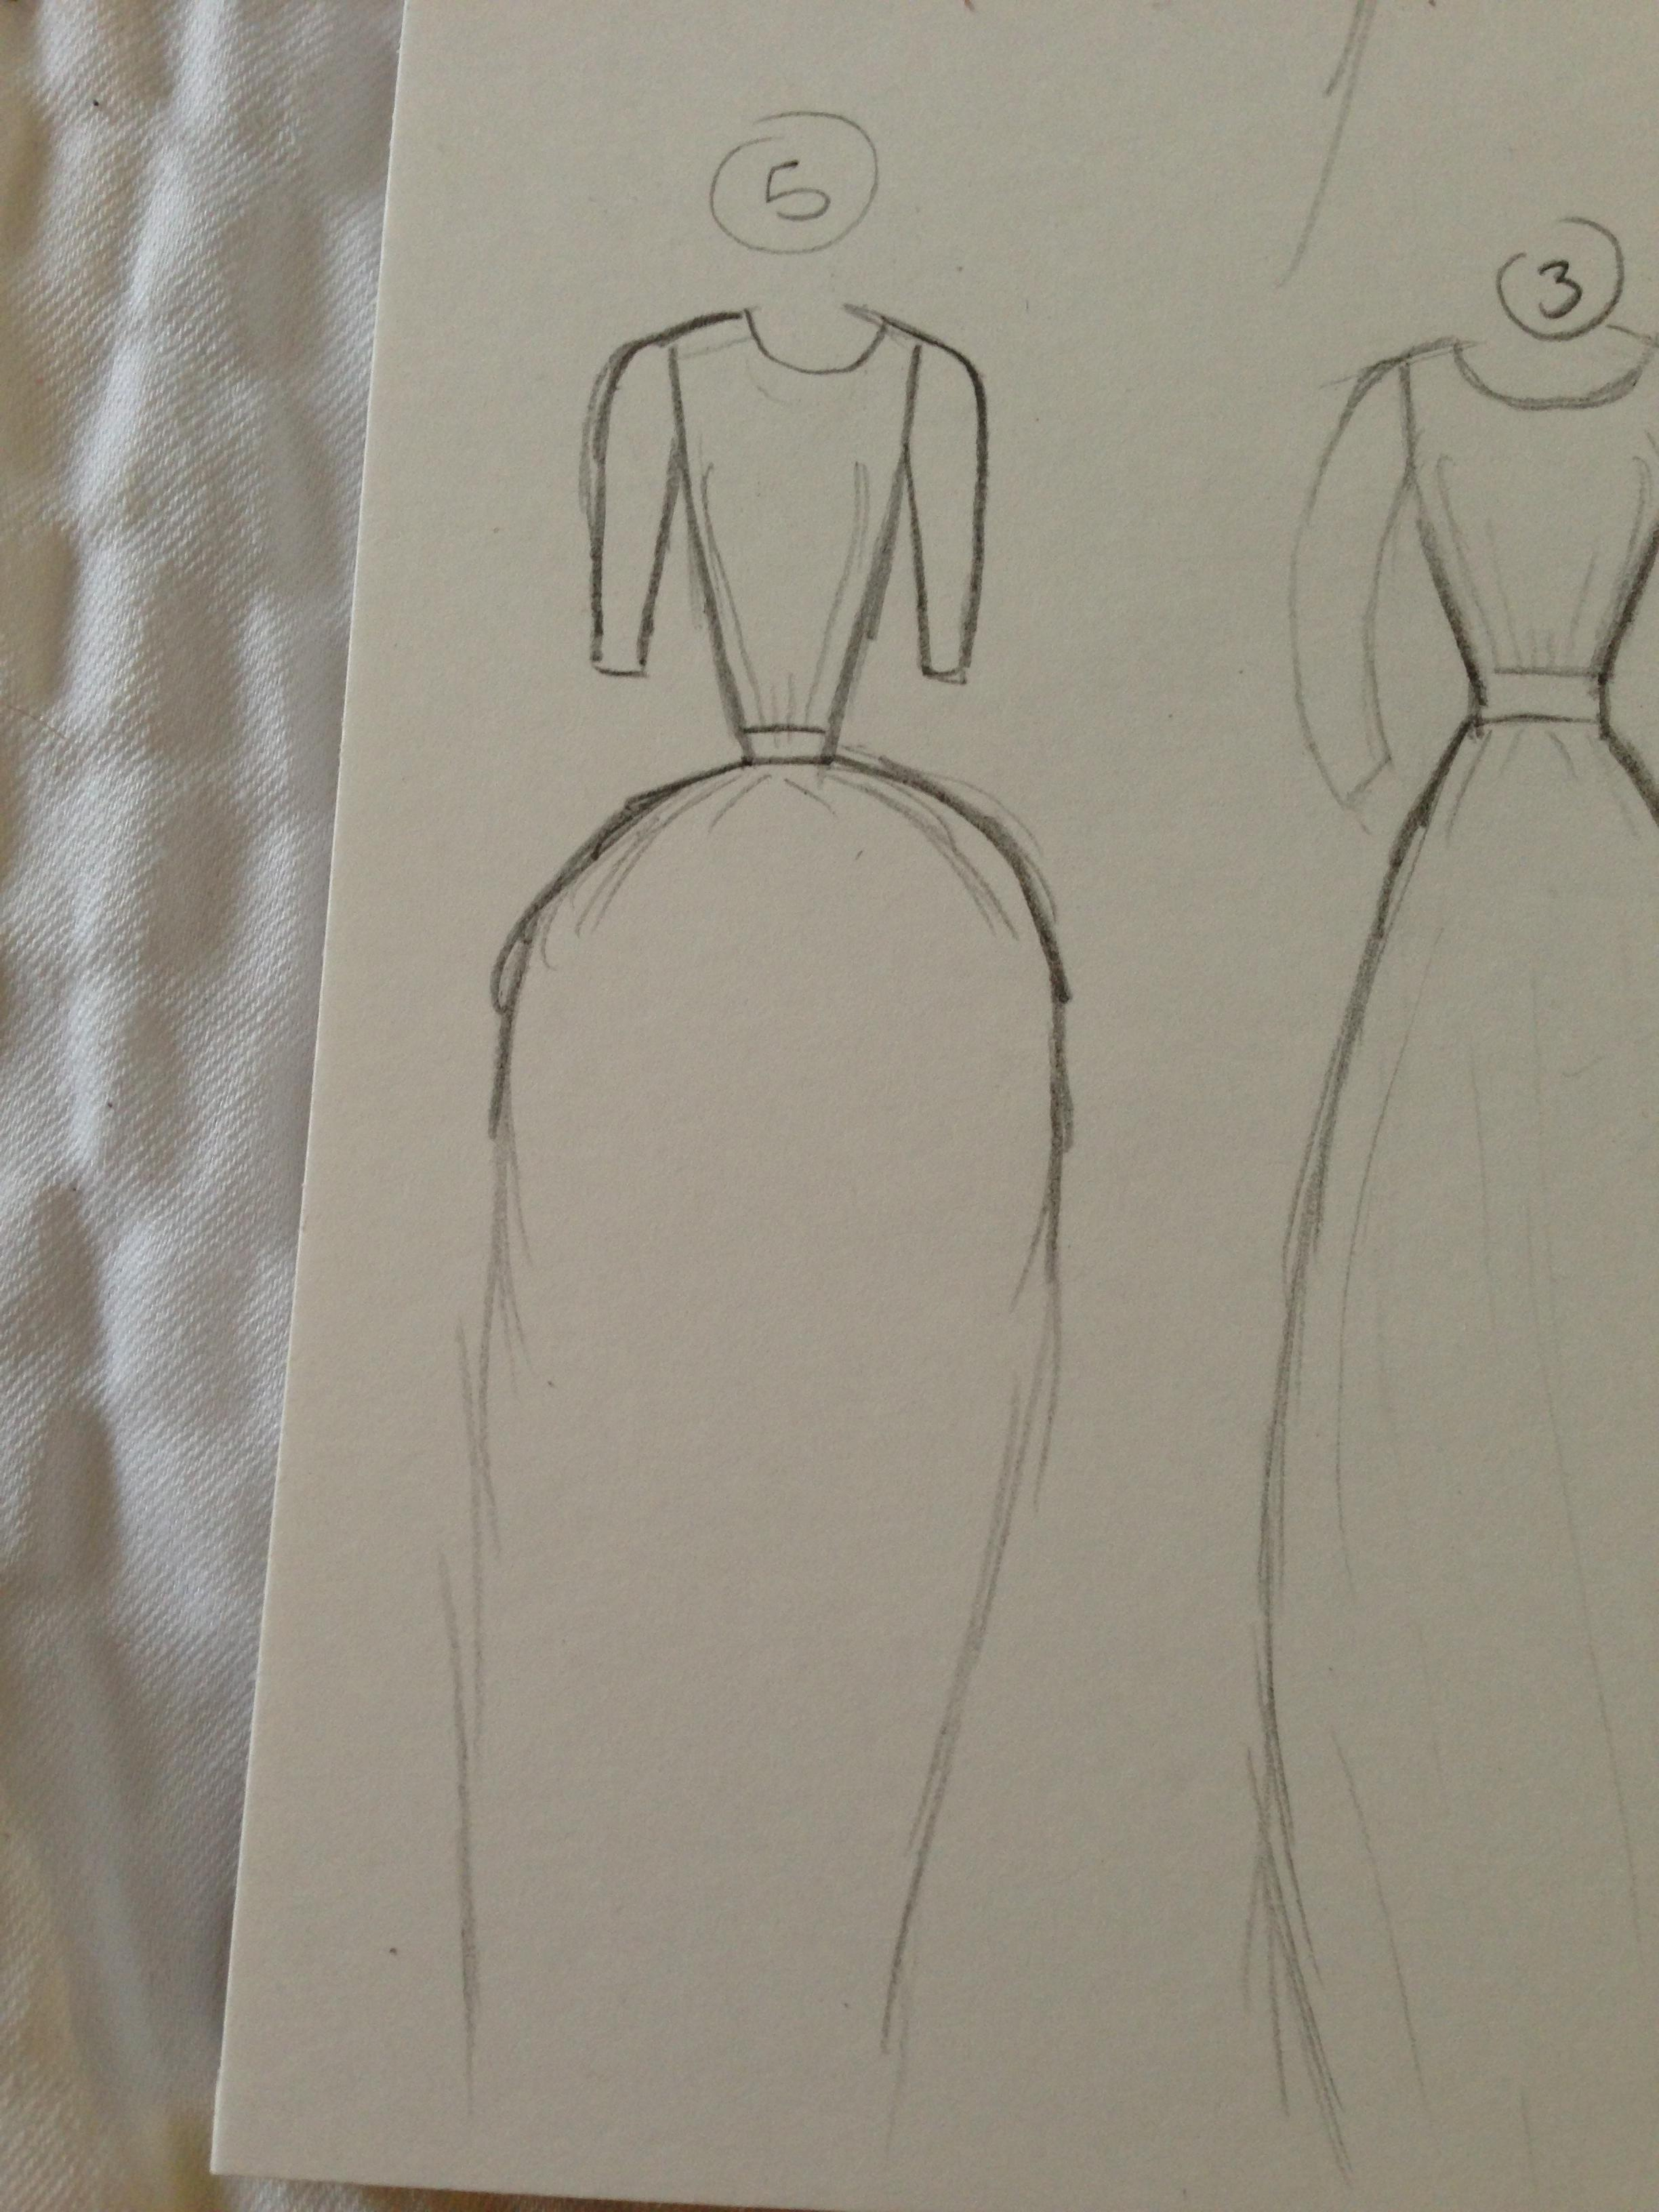 WATERCOLOR -- Dresses that Inspire - image 12 - student project